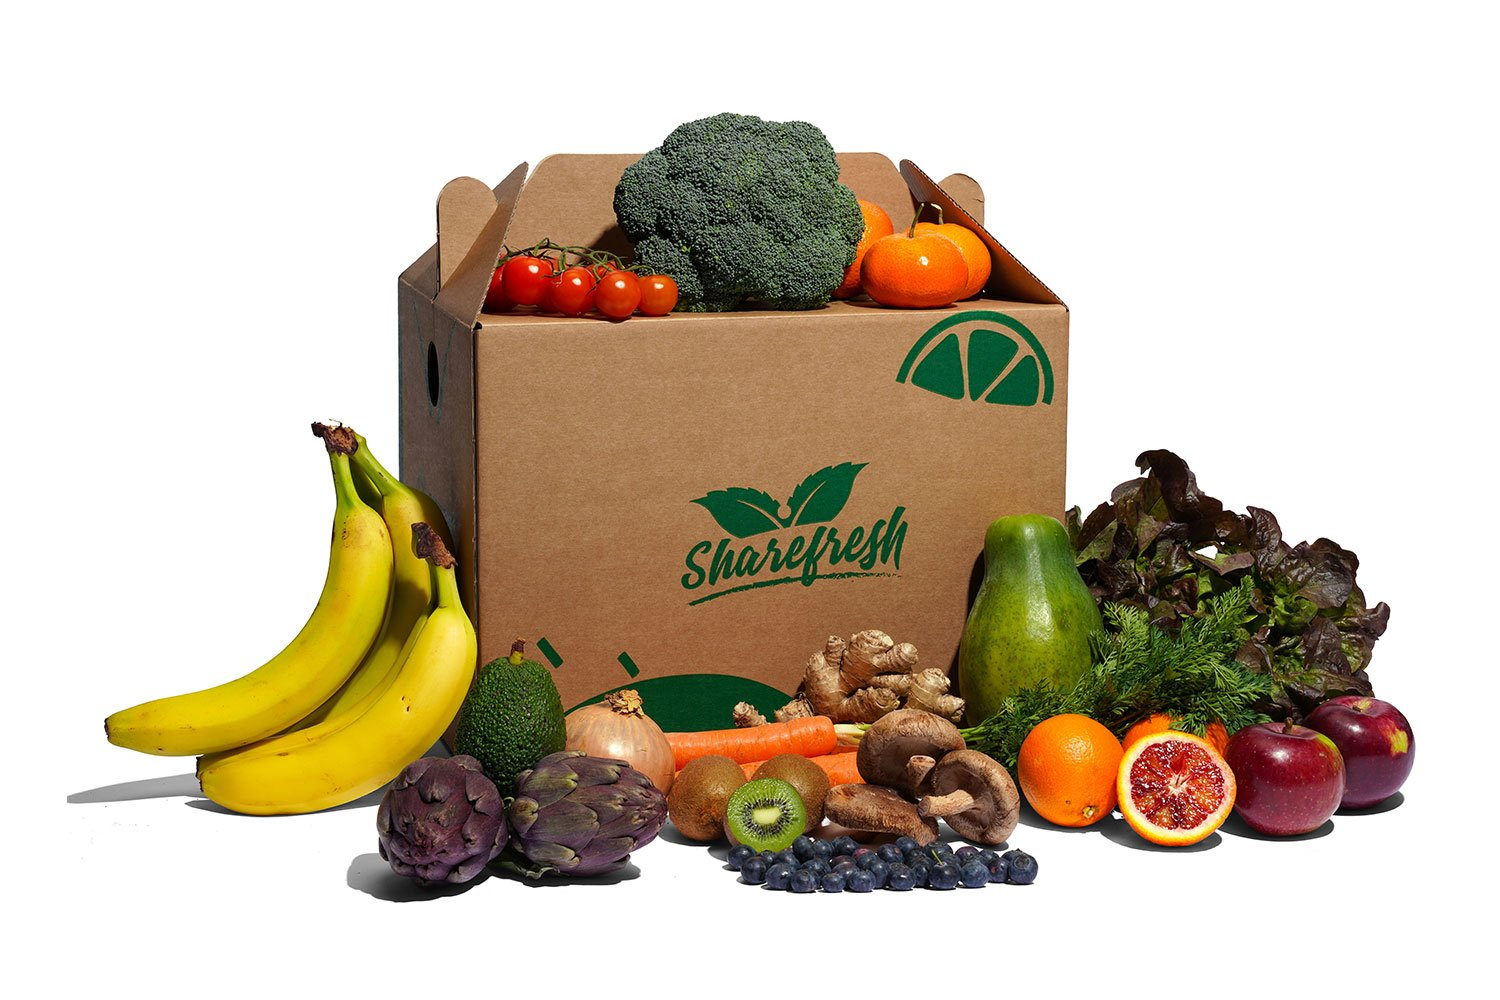 Small Fruit and Veg Organic box